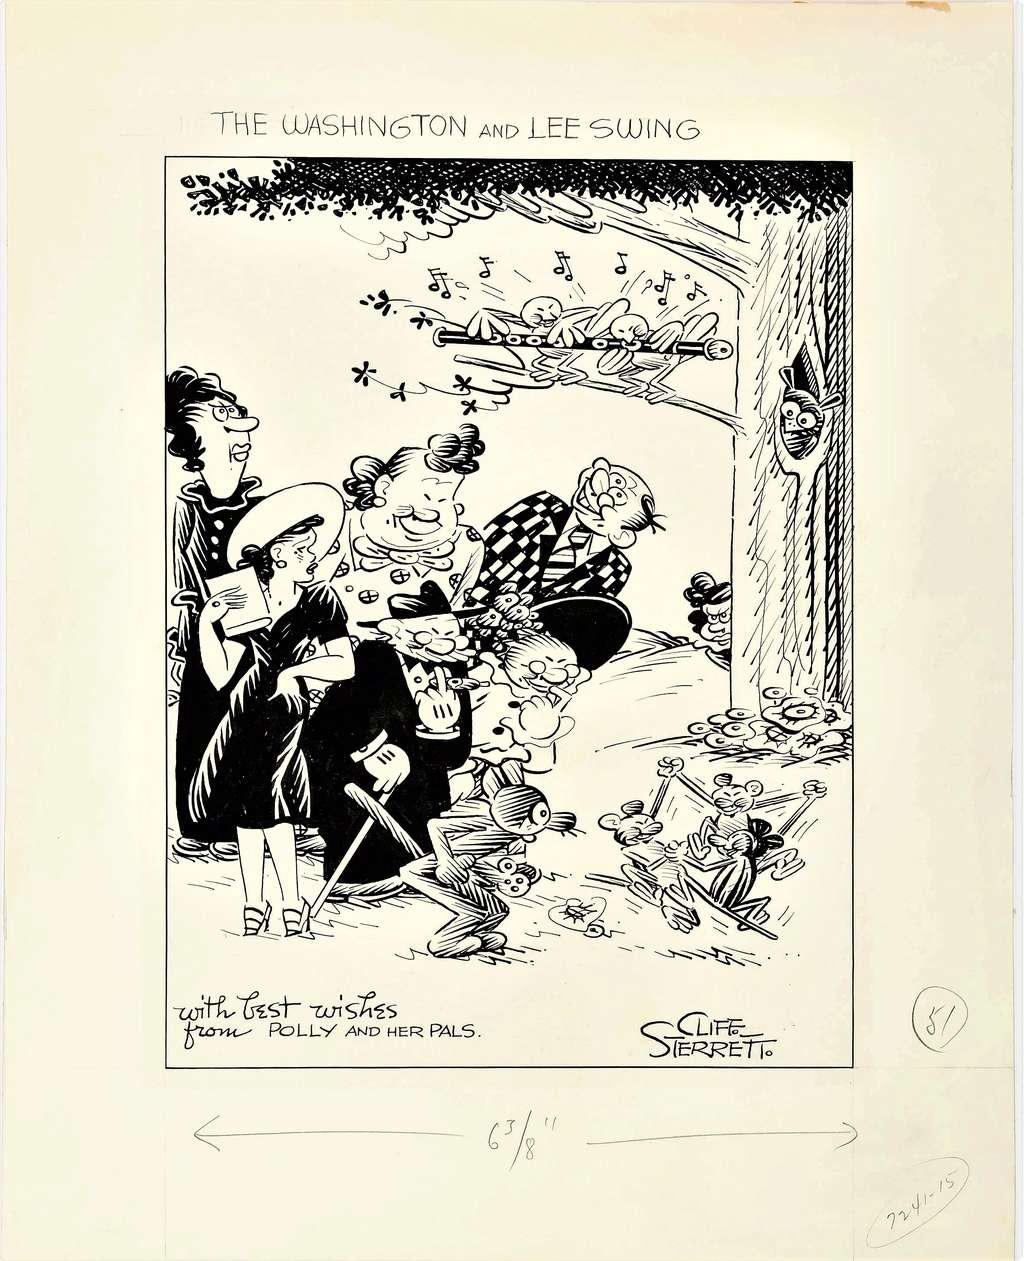 Cliff Sterett, auteur de Polly and her pals - Page 4 Pollya10